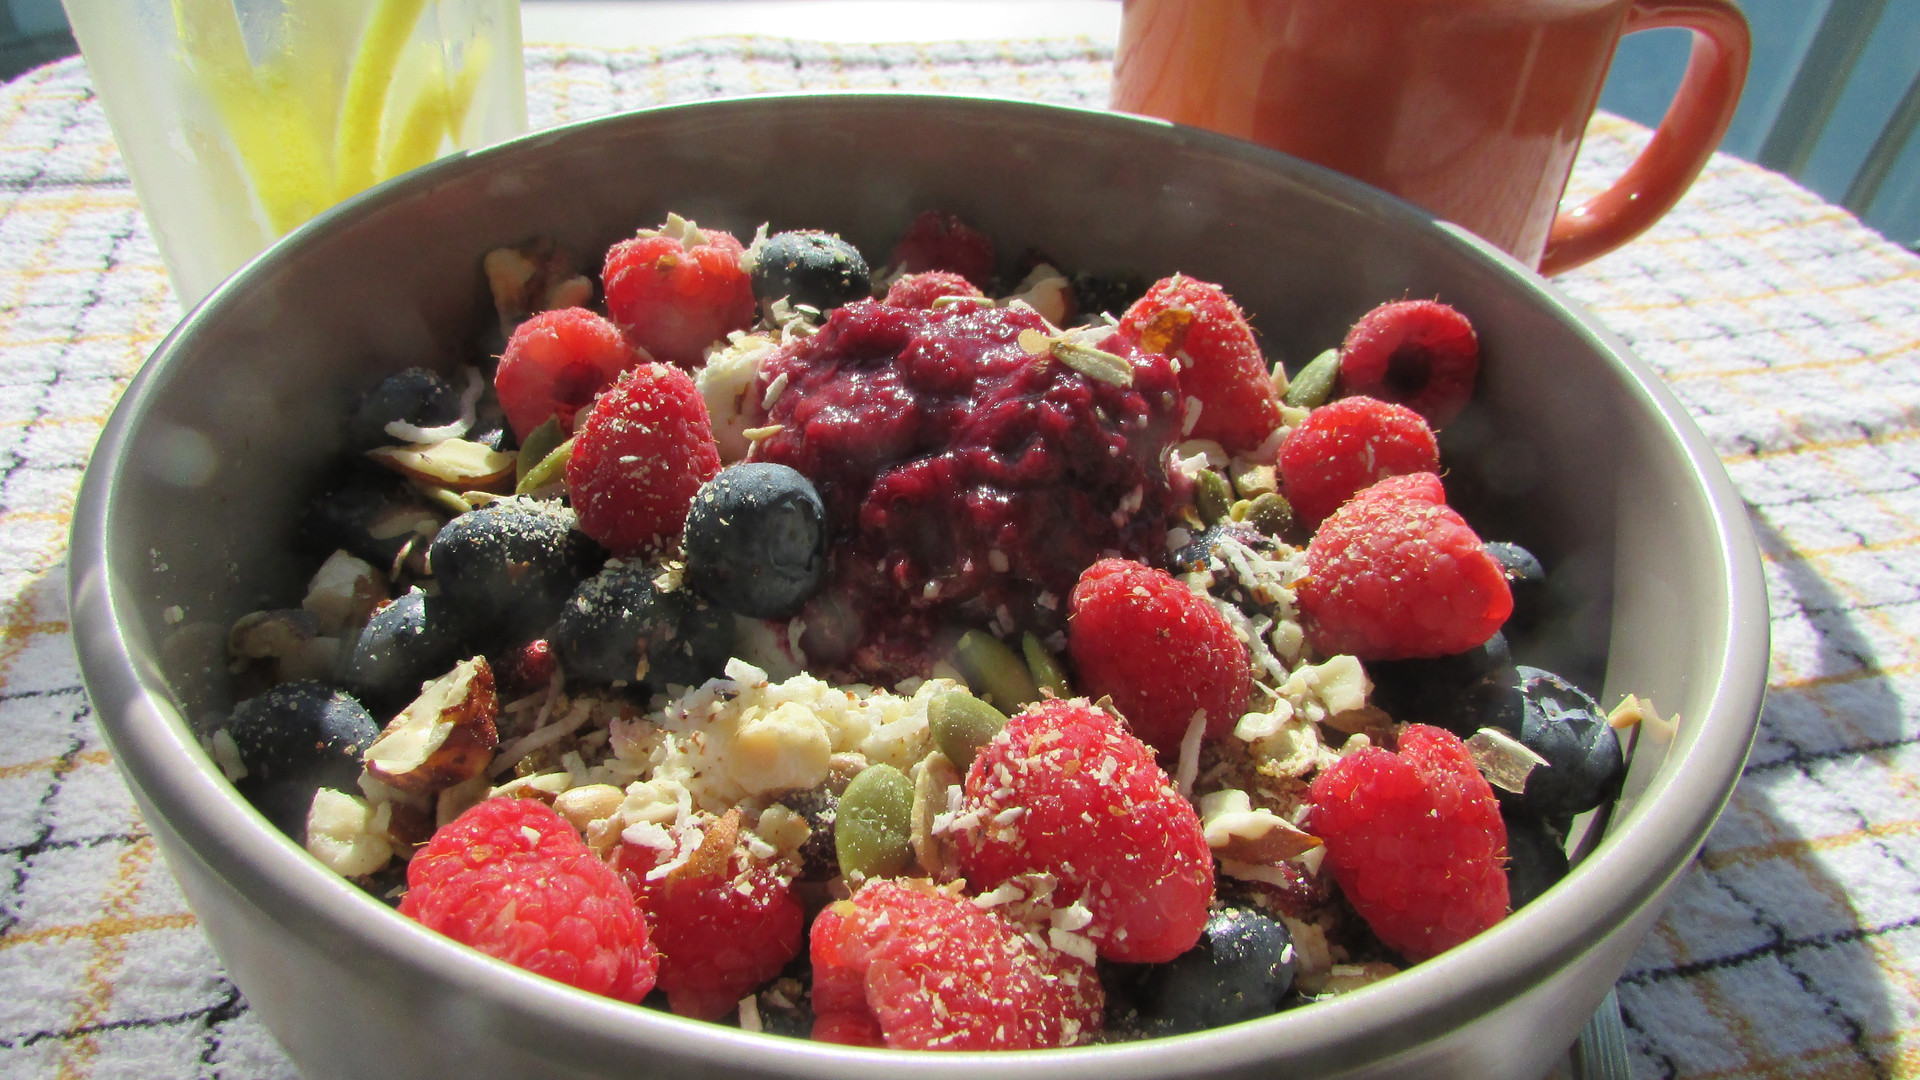 Oats & Berries